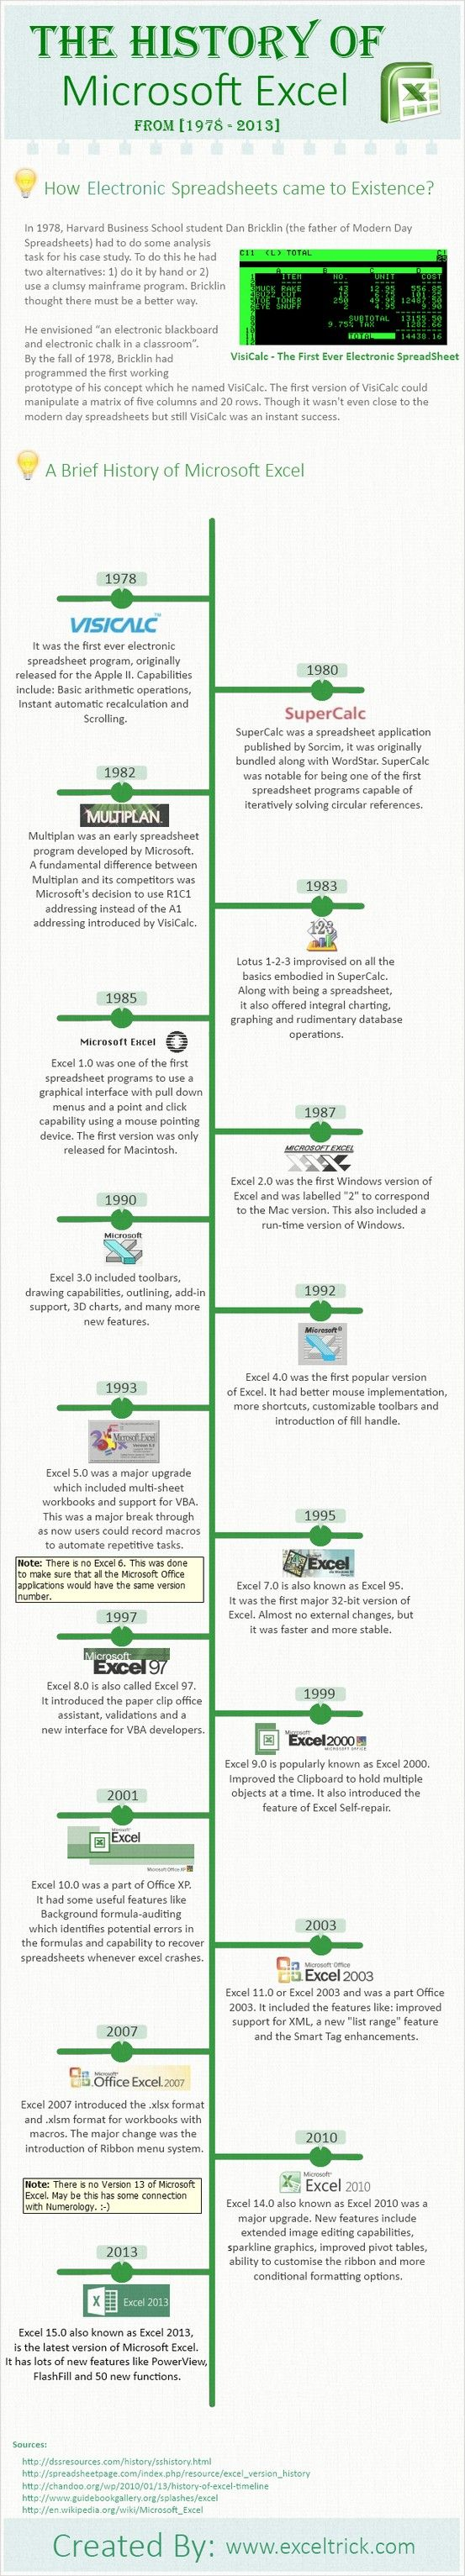 The history of Microsoft Excel #infografia #infographic #software